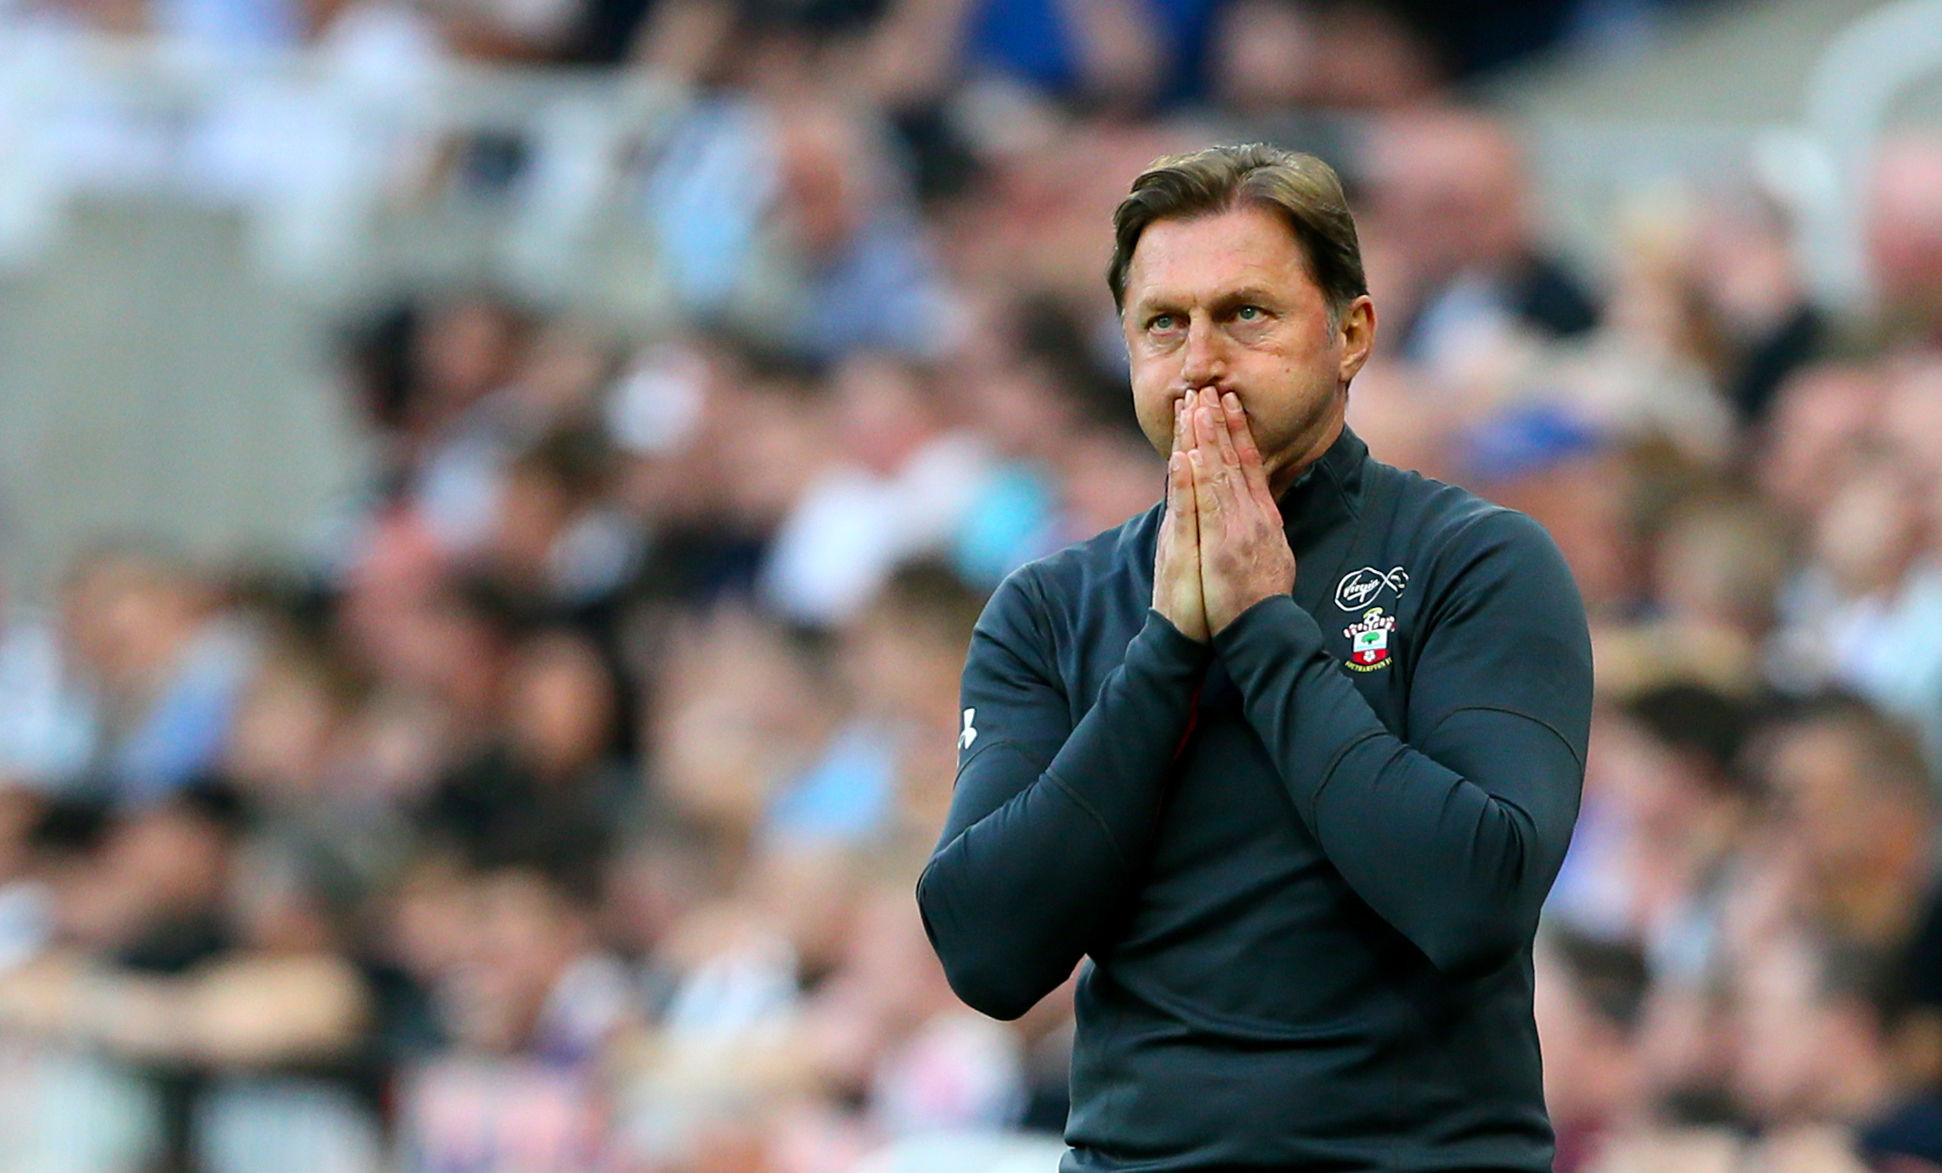 Hasenhuttl: We are still in trouble